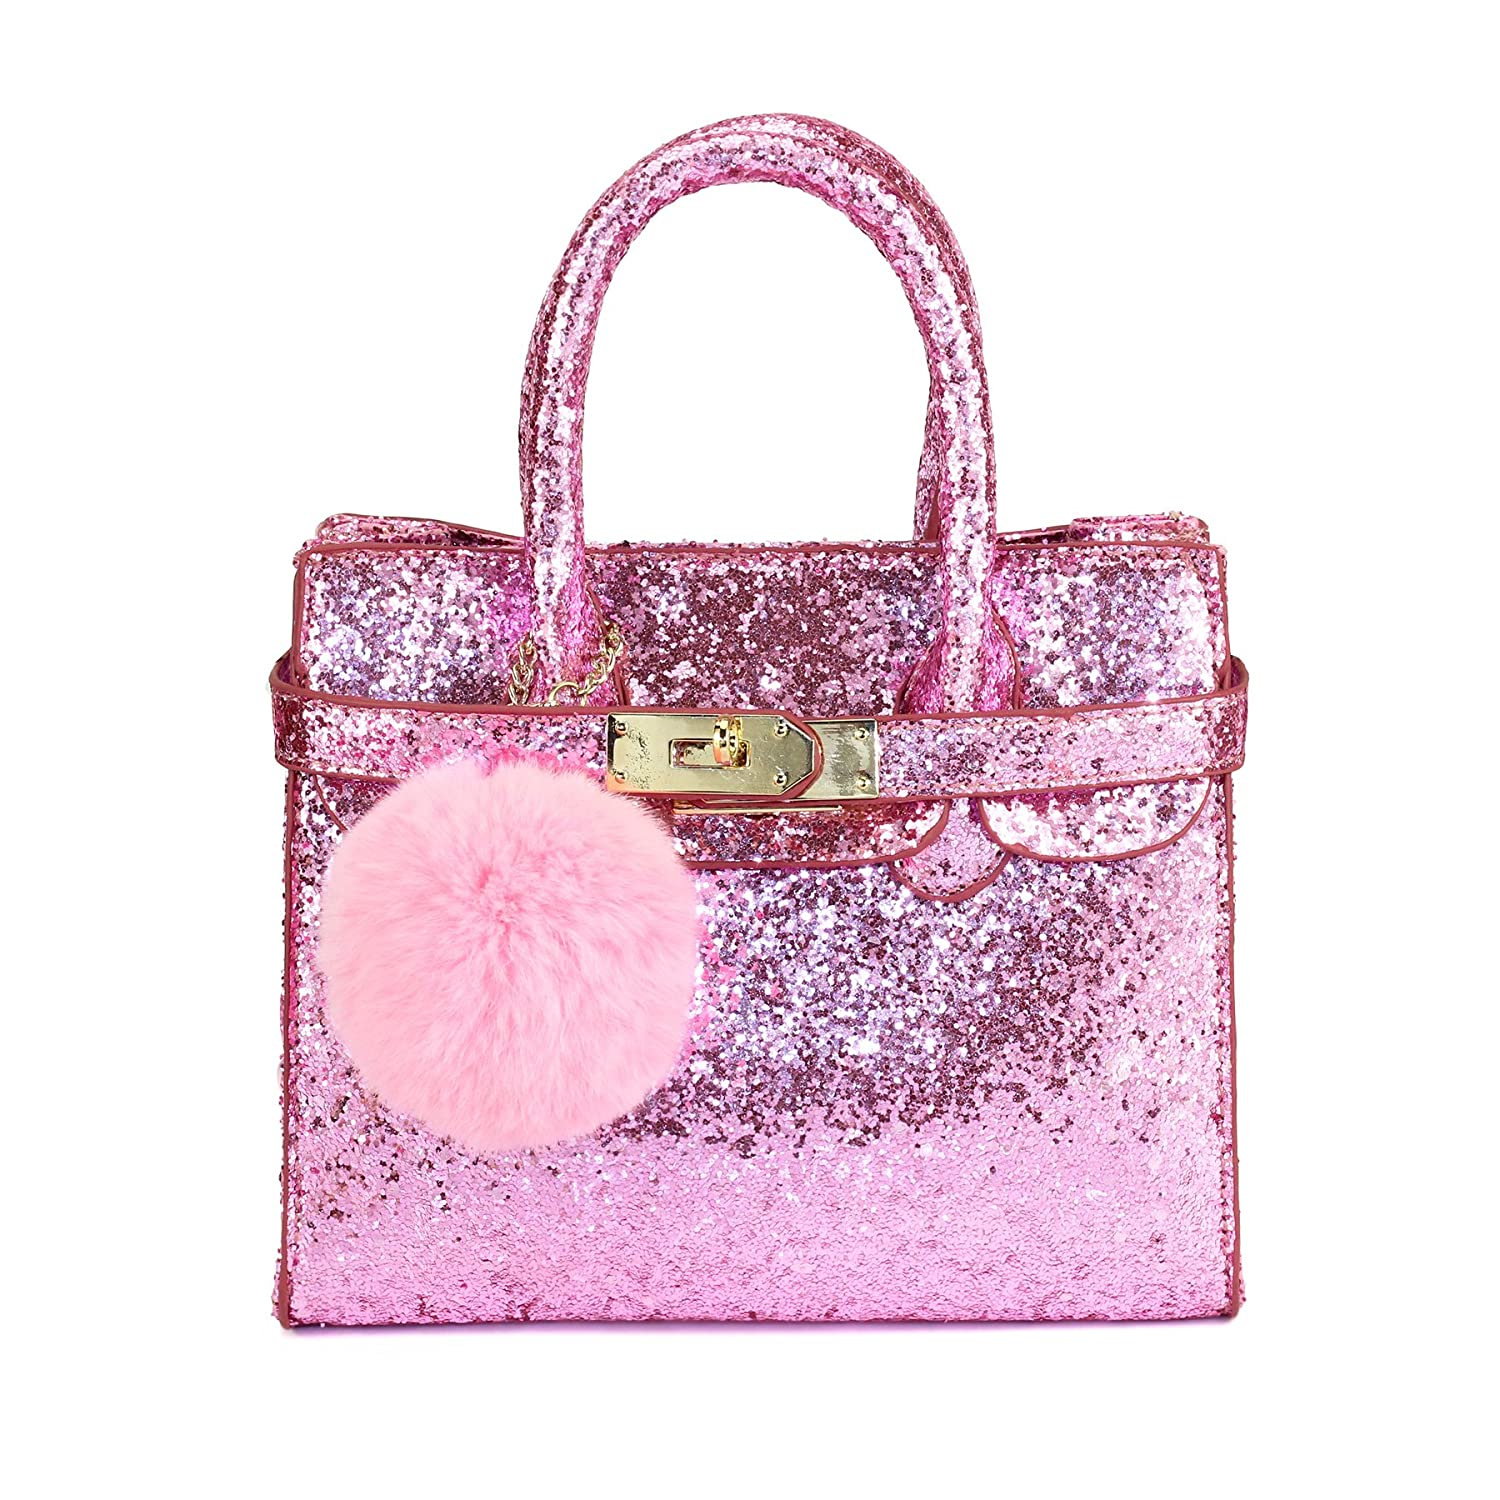 5885c1594048 CMK Trendy Kids Girls Crossbody Shoulder Handbag Shinny Pink Glitter with  Fur Ball Poms My First Purse for Toddlers (80013 Glitter Pink)  Amazon.ca   Shoes   ...